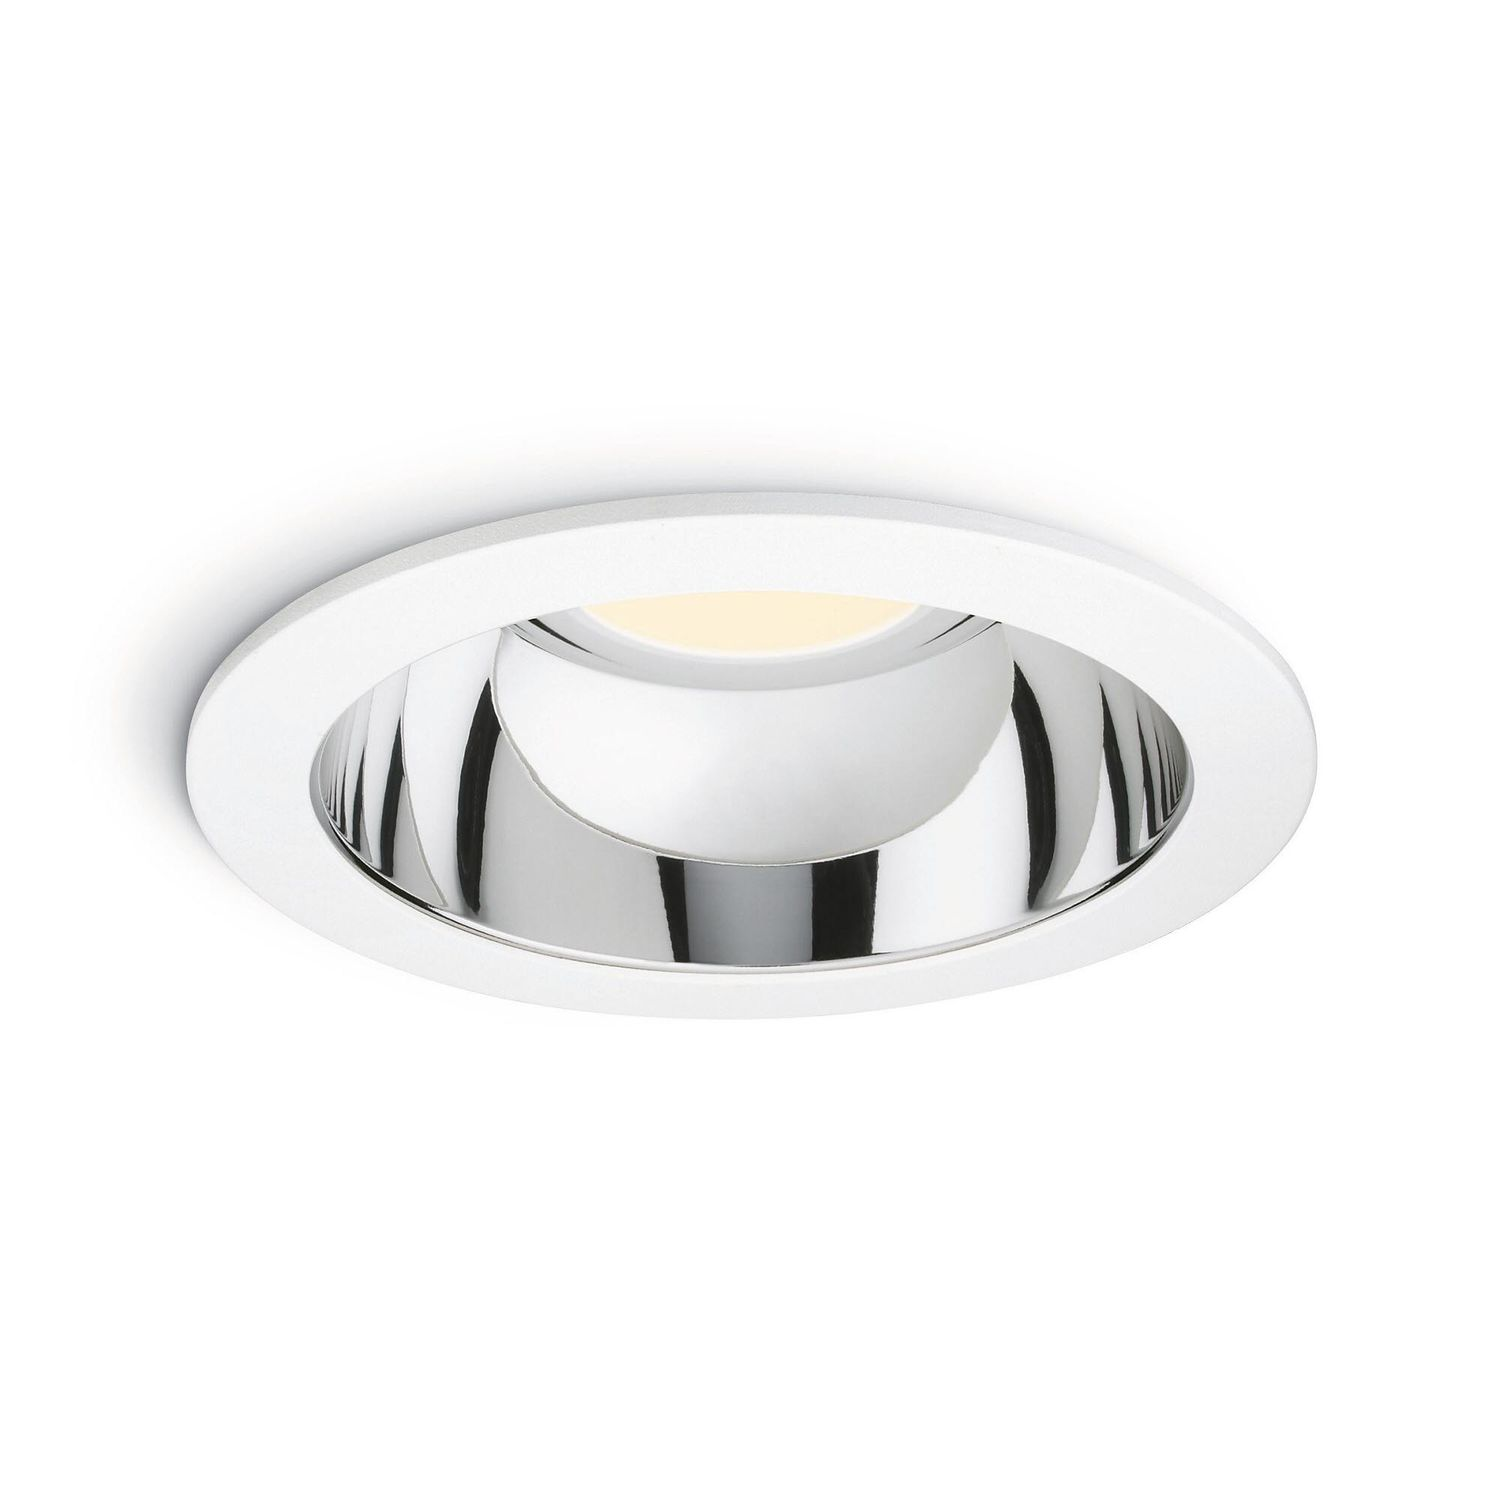 Recessed downlight surface mounted led round luxspace recessed downlight surface mounted led round luxspace aloadofball Images